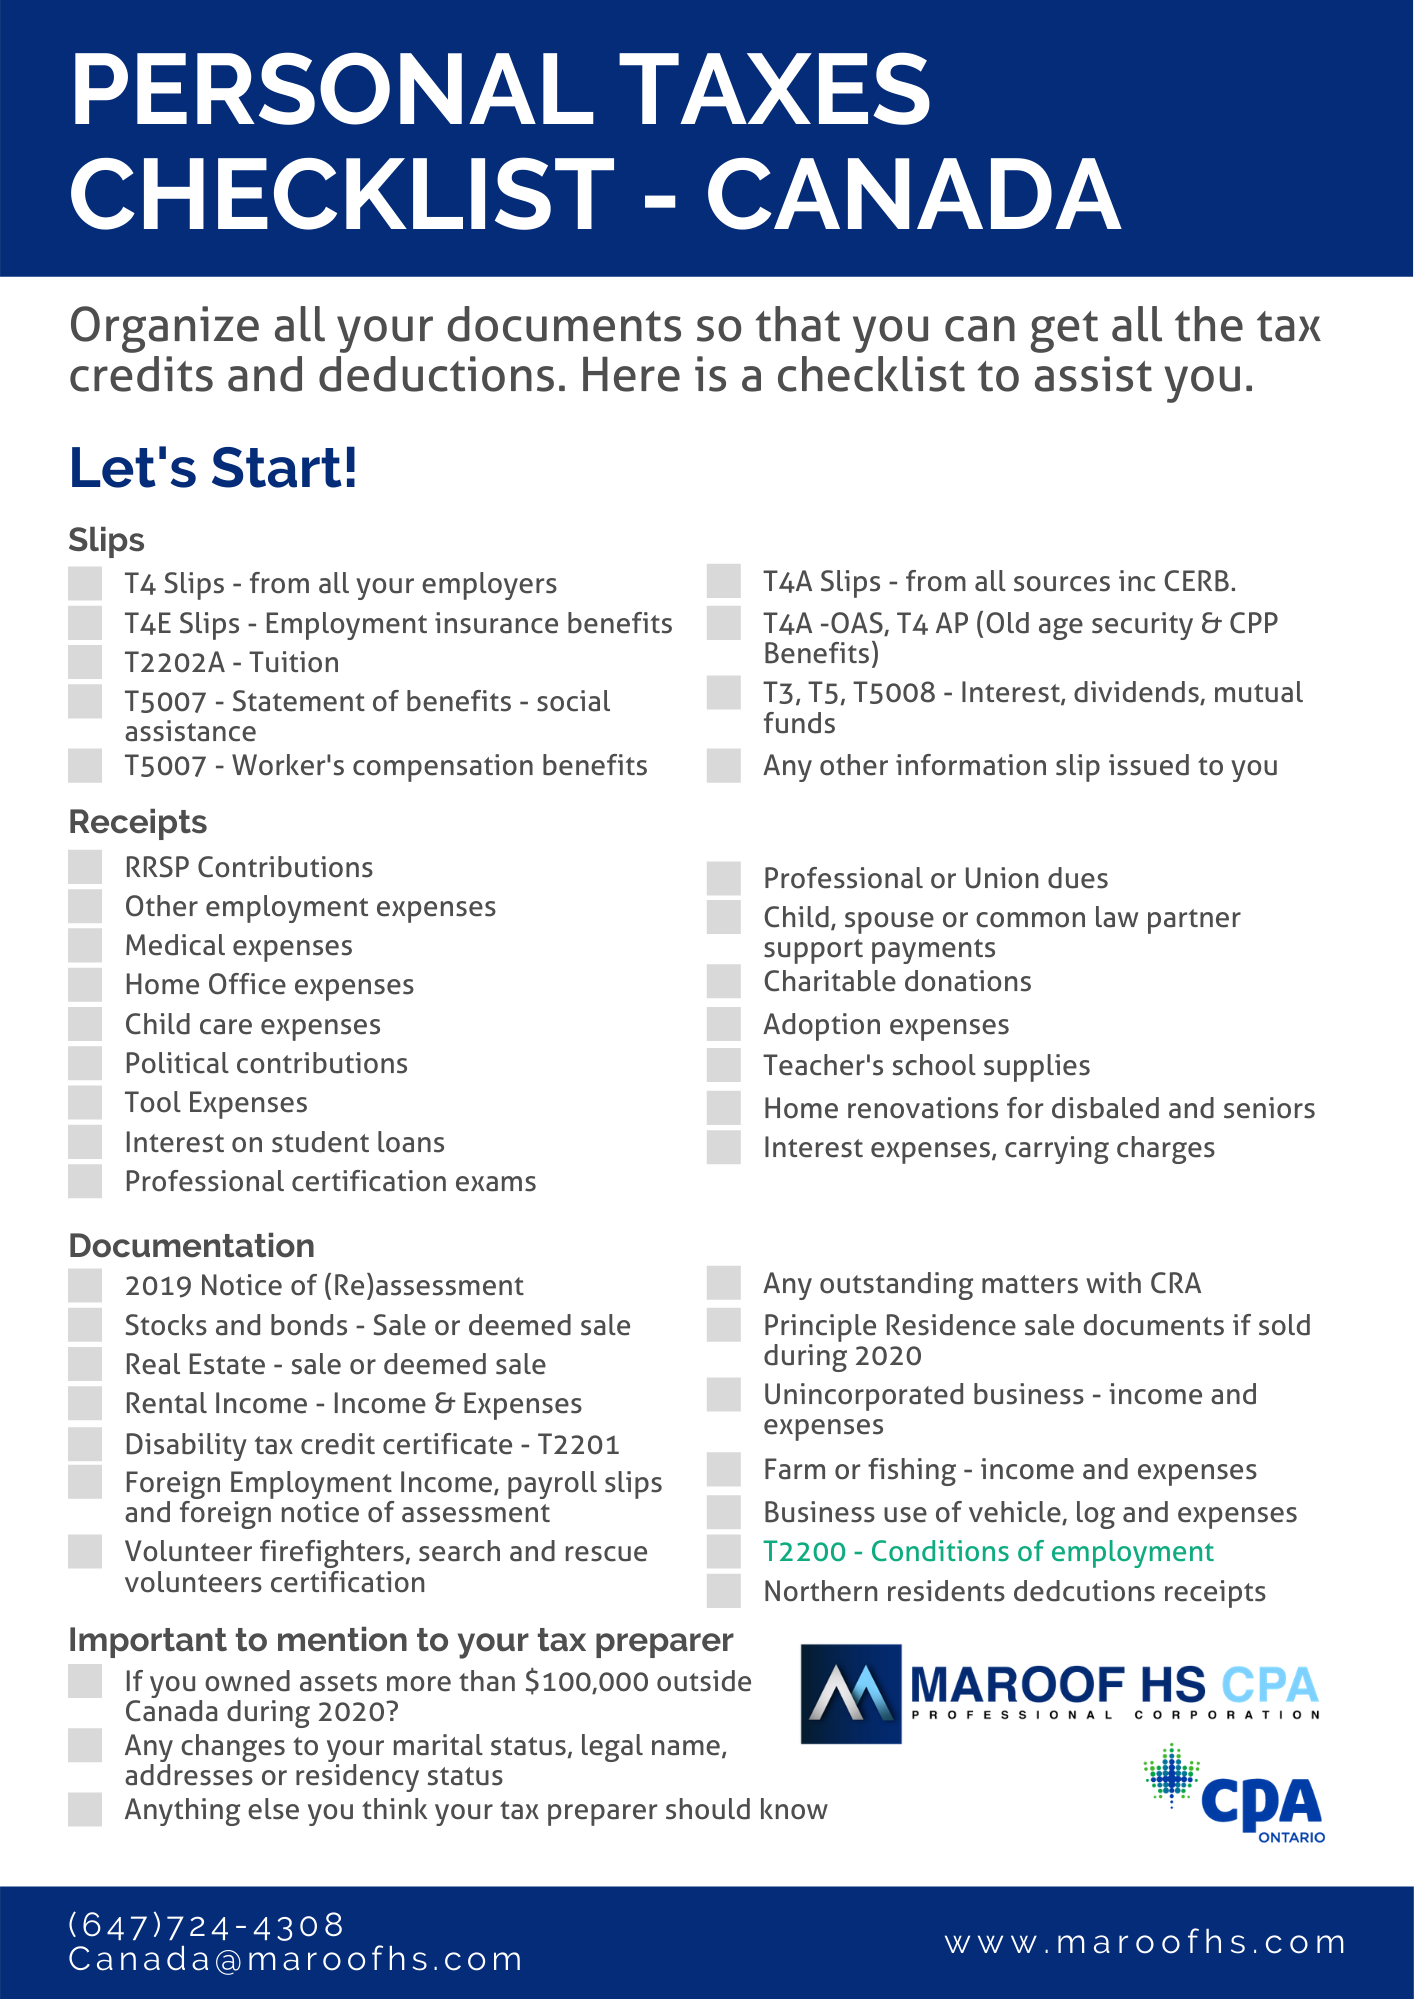 2020 income tax return services in Toronto